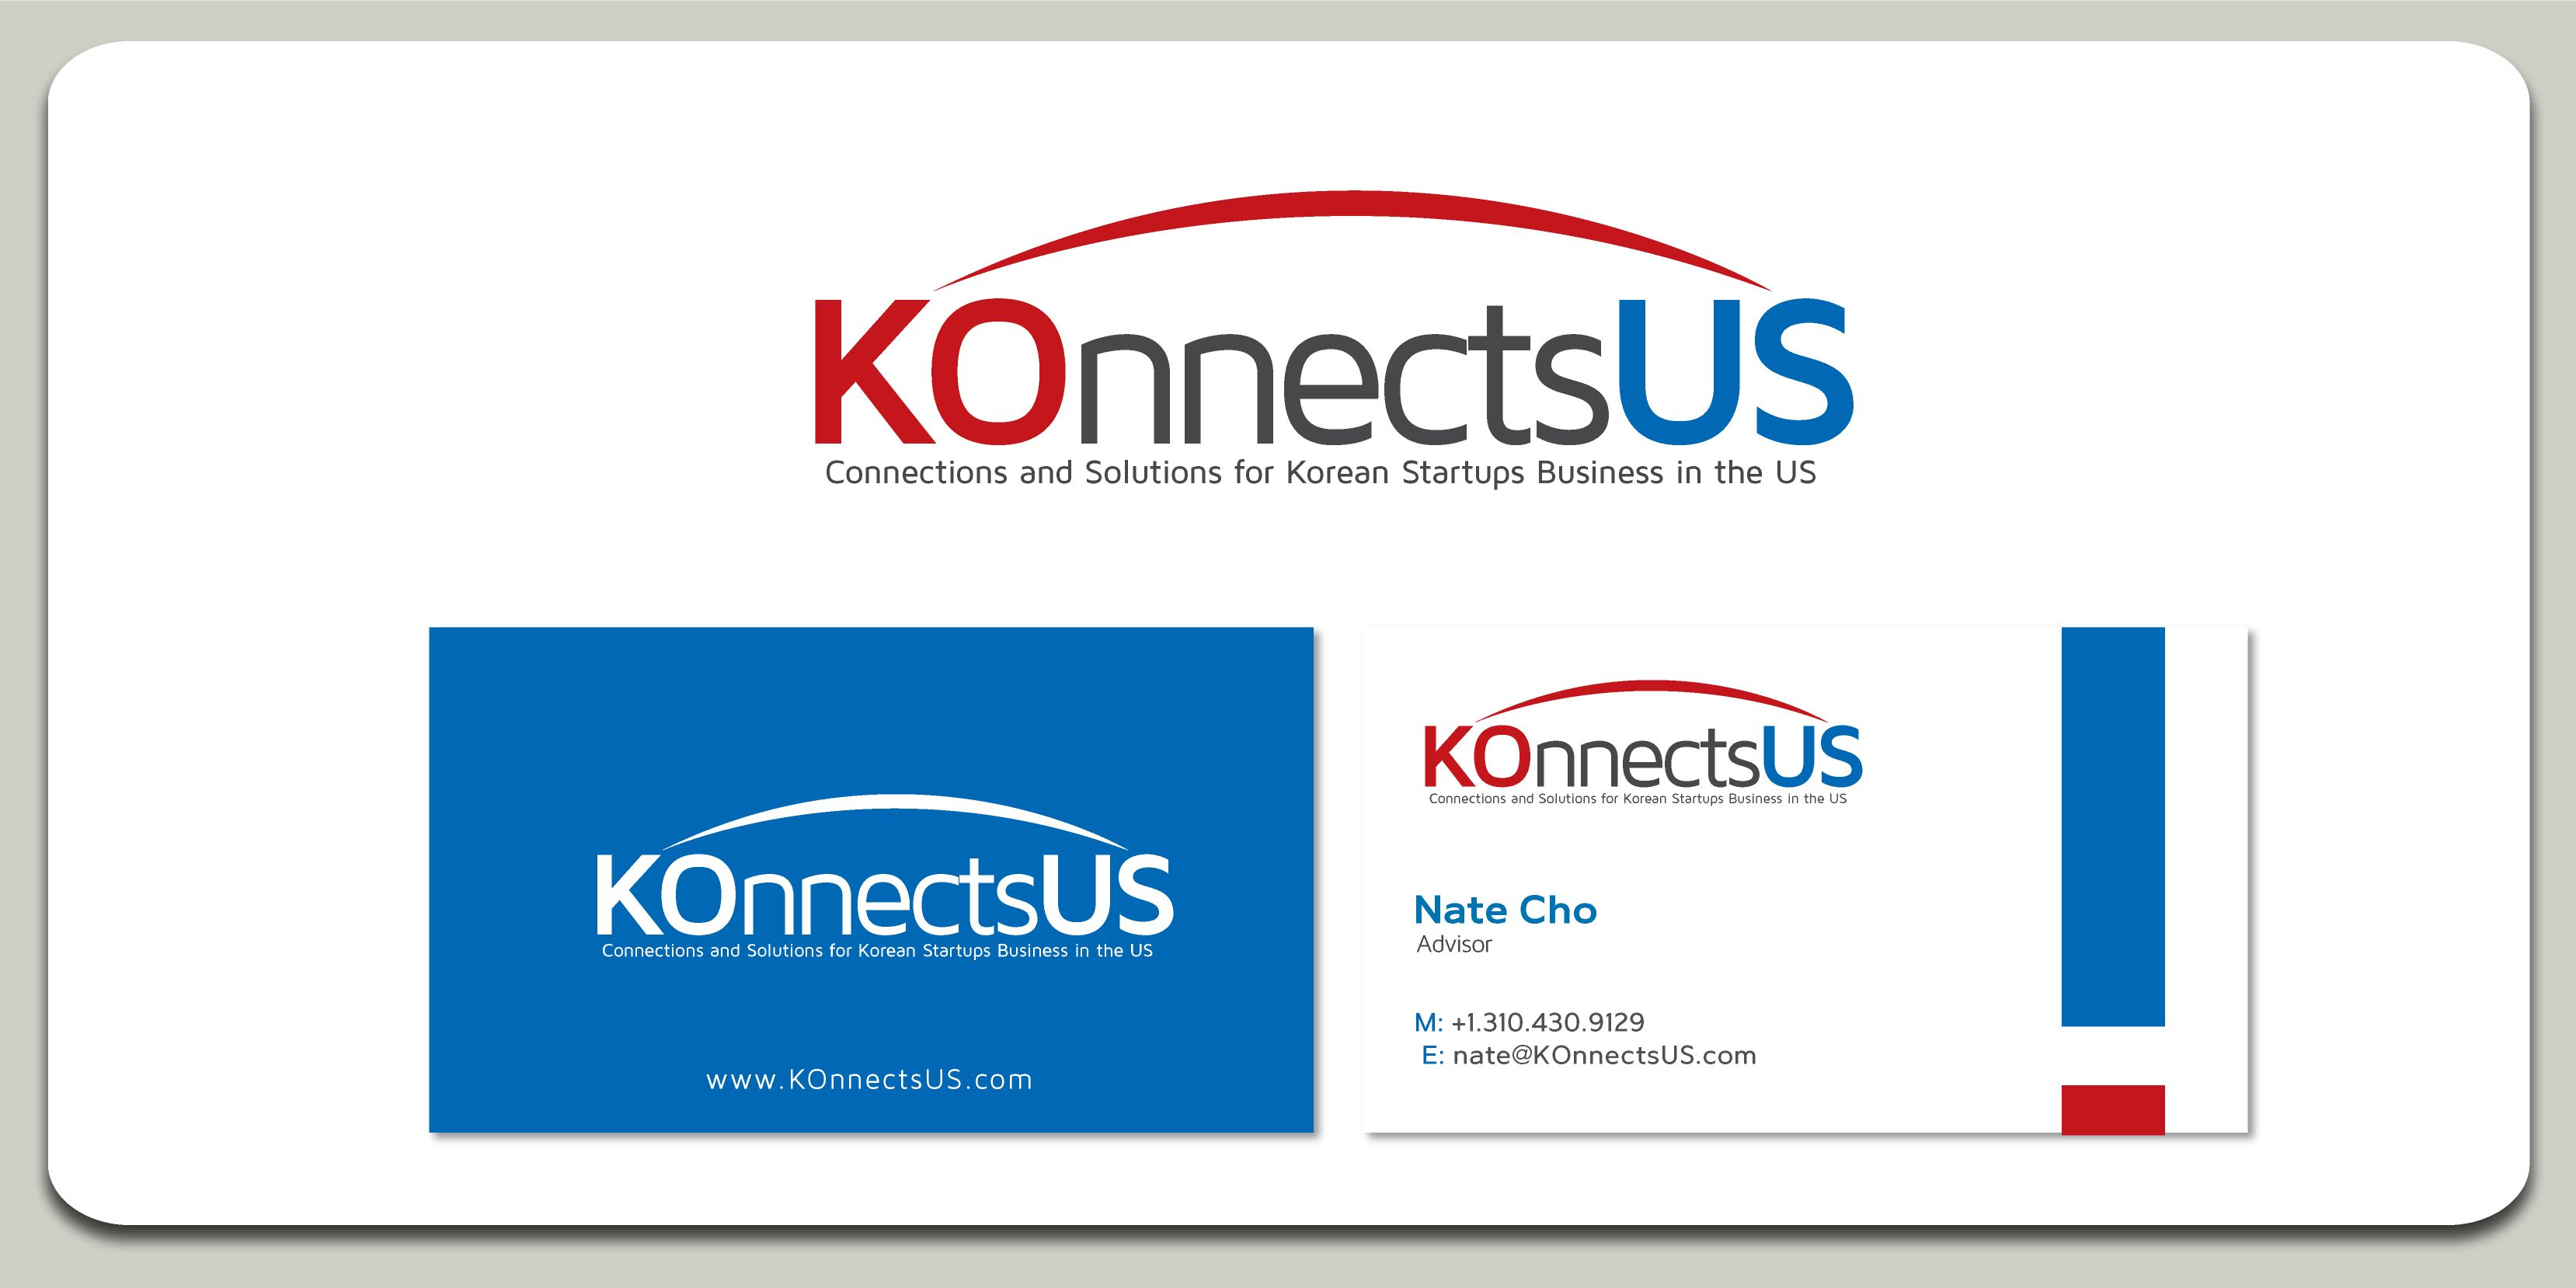 logo and business cards for konnectsus from korea to us new york